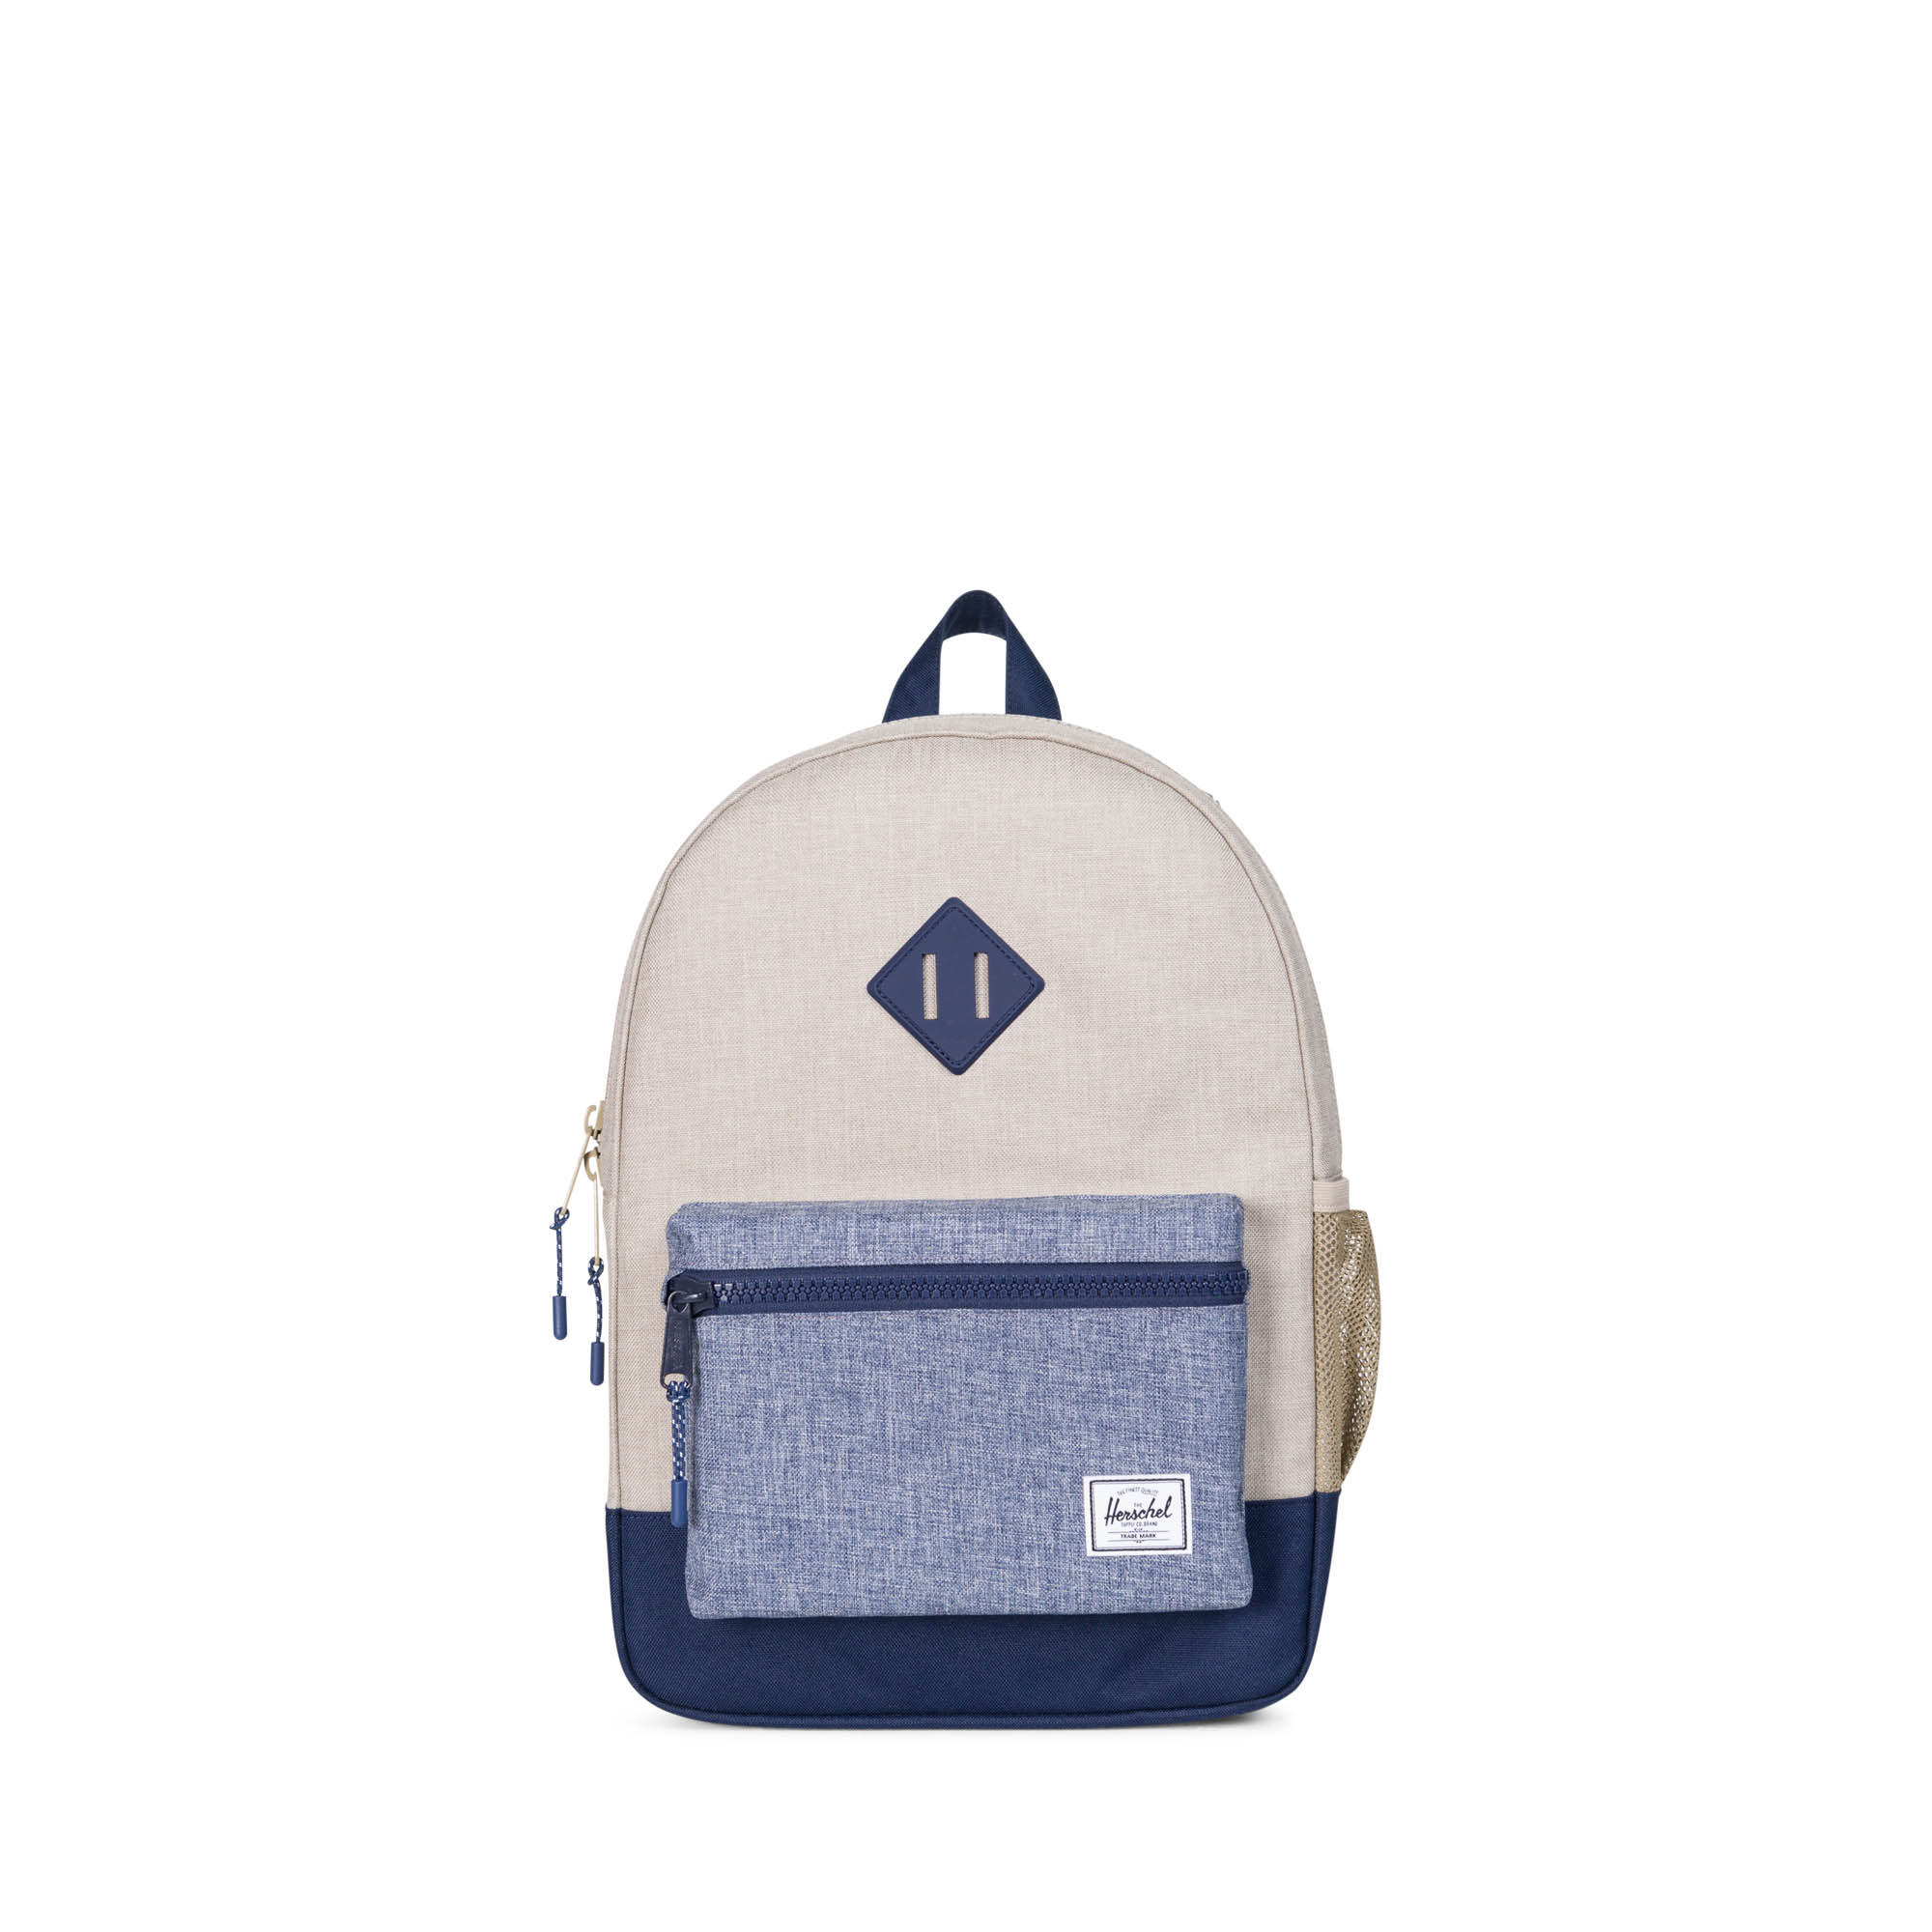 5d73da7587c Heritage Backpack Youth   Herschel Supply Company